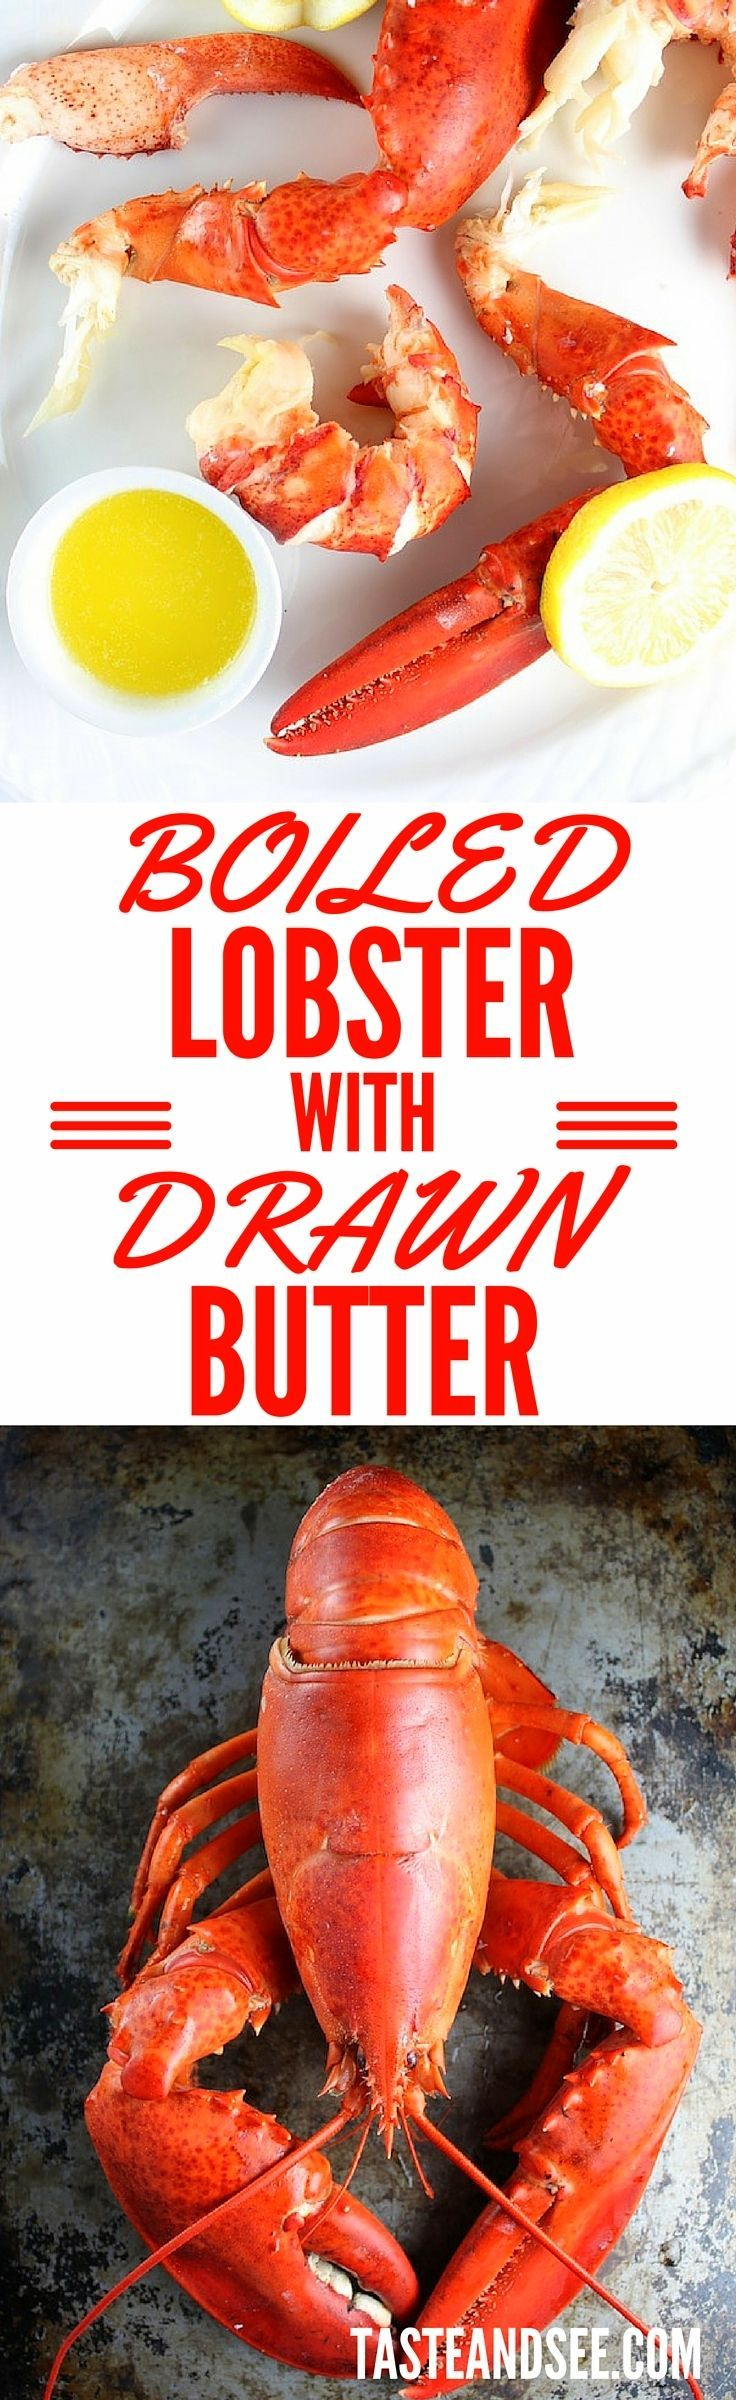 How To Cook Boiled #Lobster with Drawn Butter. It's easier than you think, & and it tastes fantastic! Serve with fresh drawn butter. http://tasteandsee.com